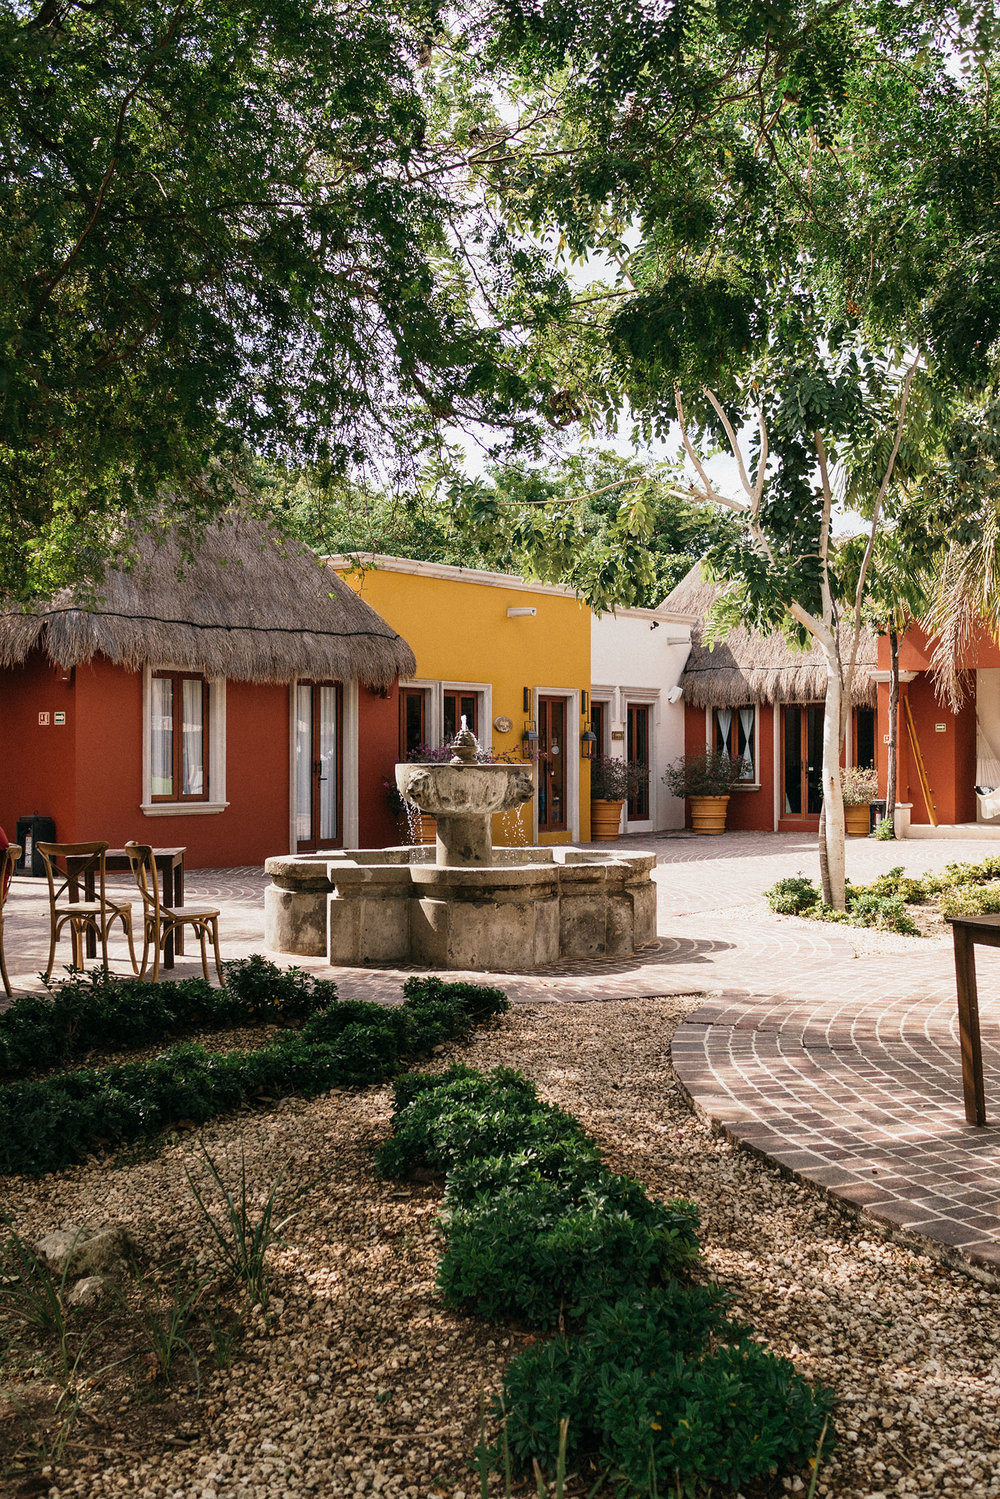 Rode our bikes to El Pueblito, a small square made up of restaurants, boutiques, and art galleries in the middle of Mayakoba complex designed as an authentic Mexican village square.